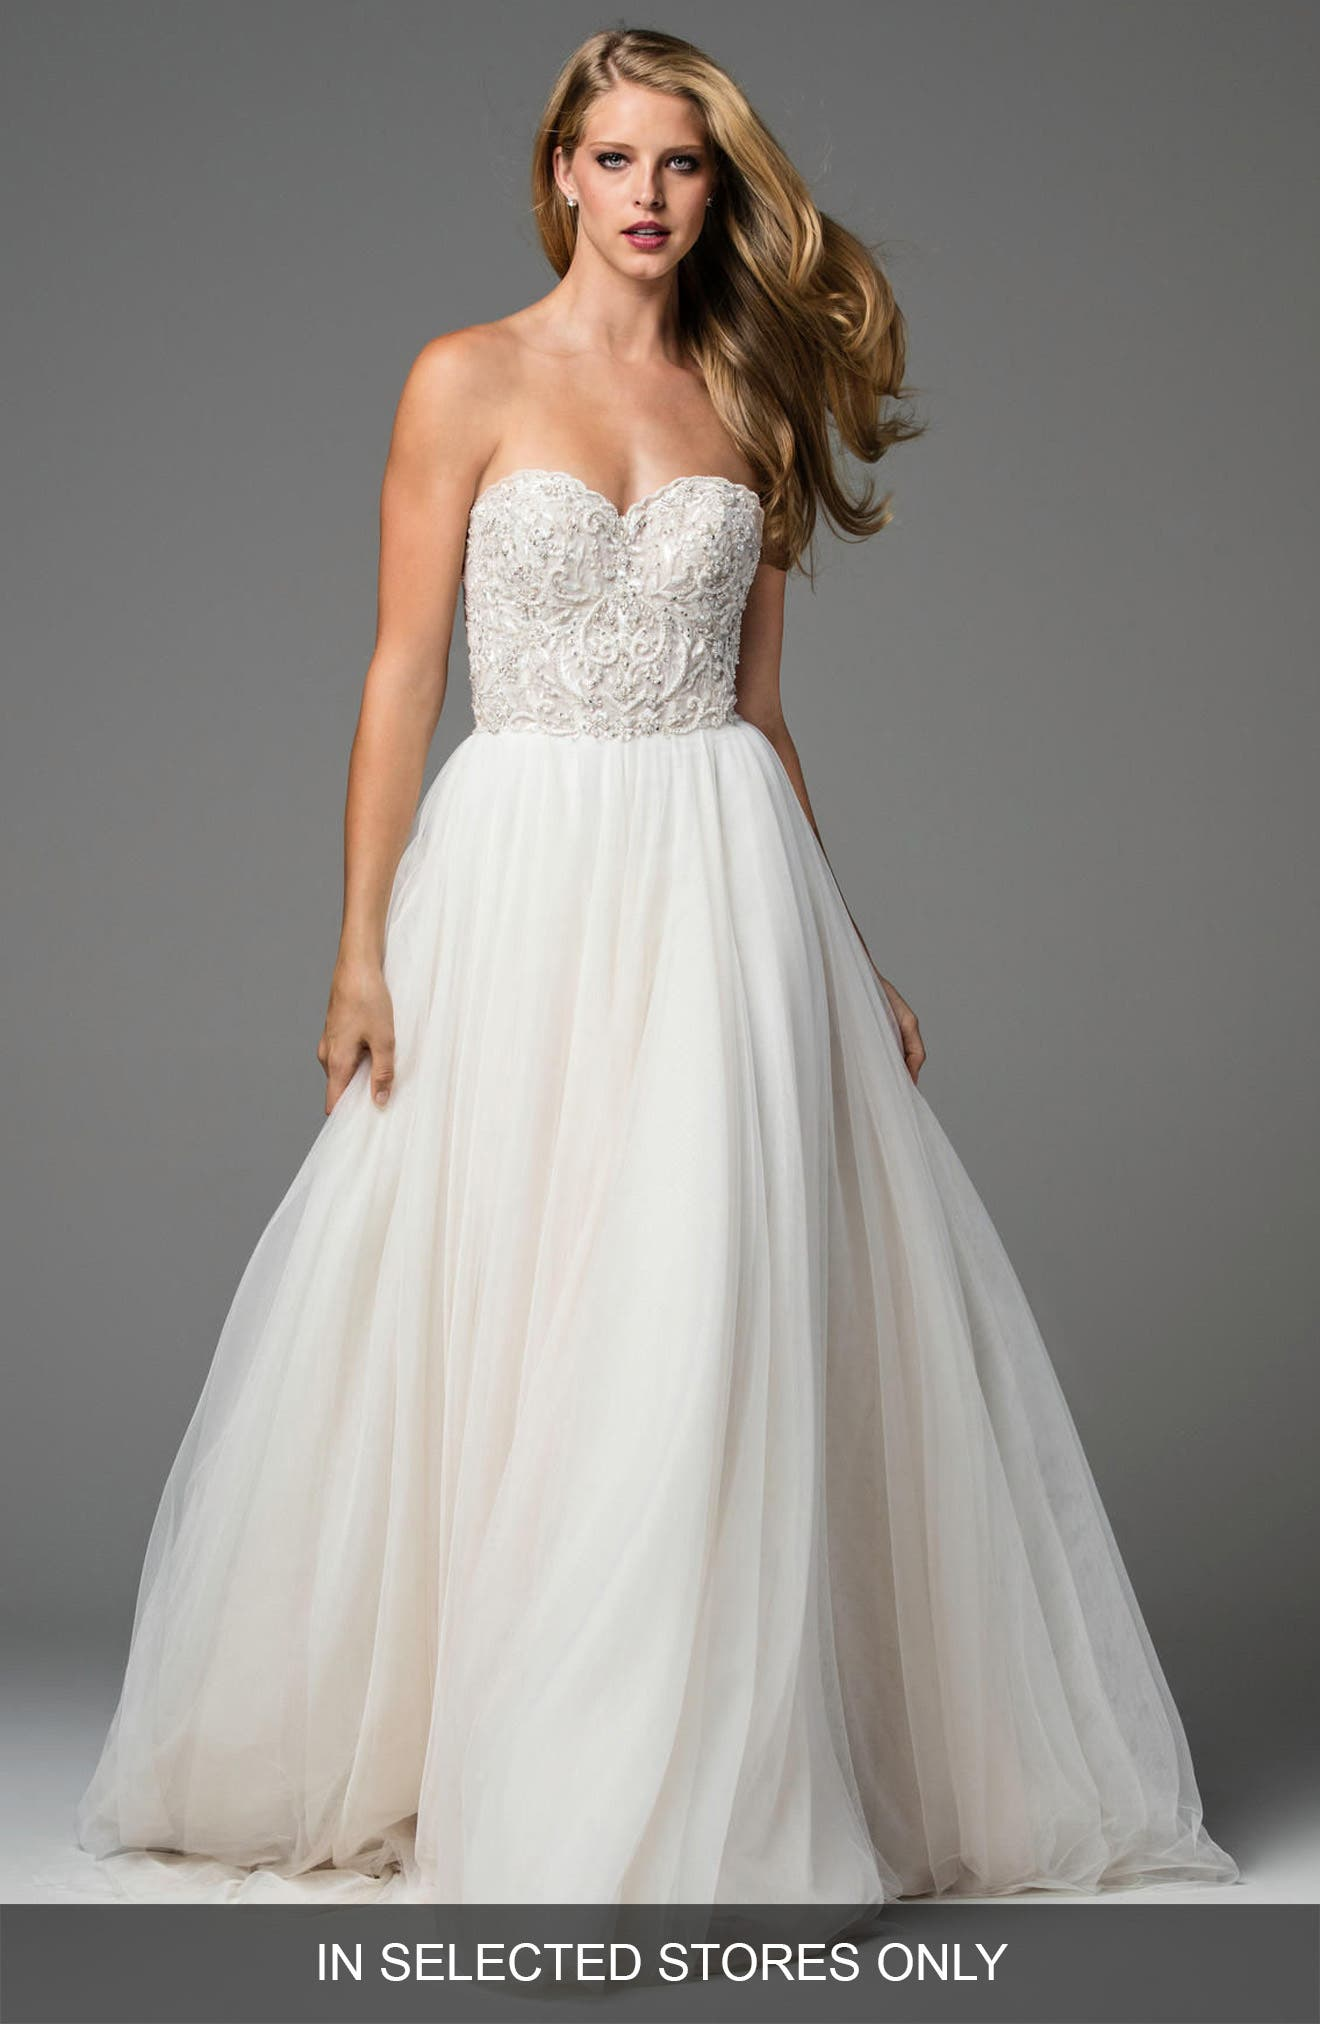 Rosina Embellished Strapless Lace & Tulle A-Line Gown,                             Main thumbnail 1, color,                             Reisling